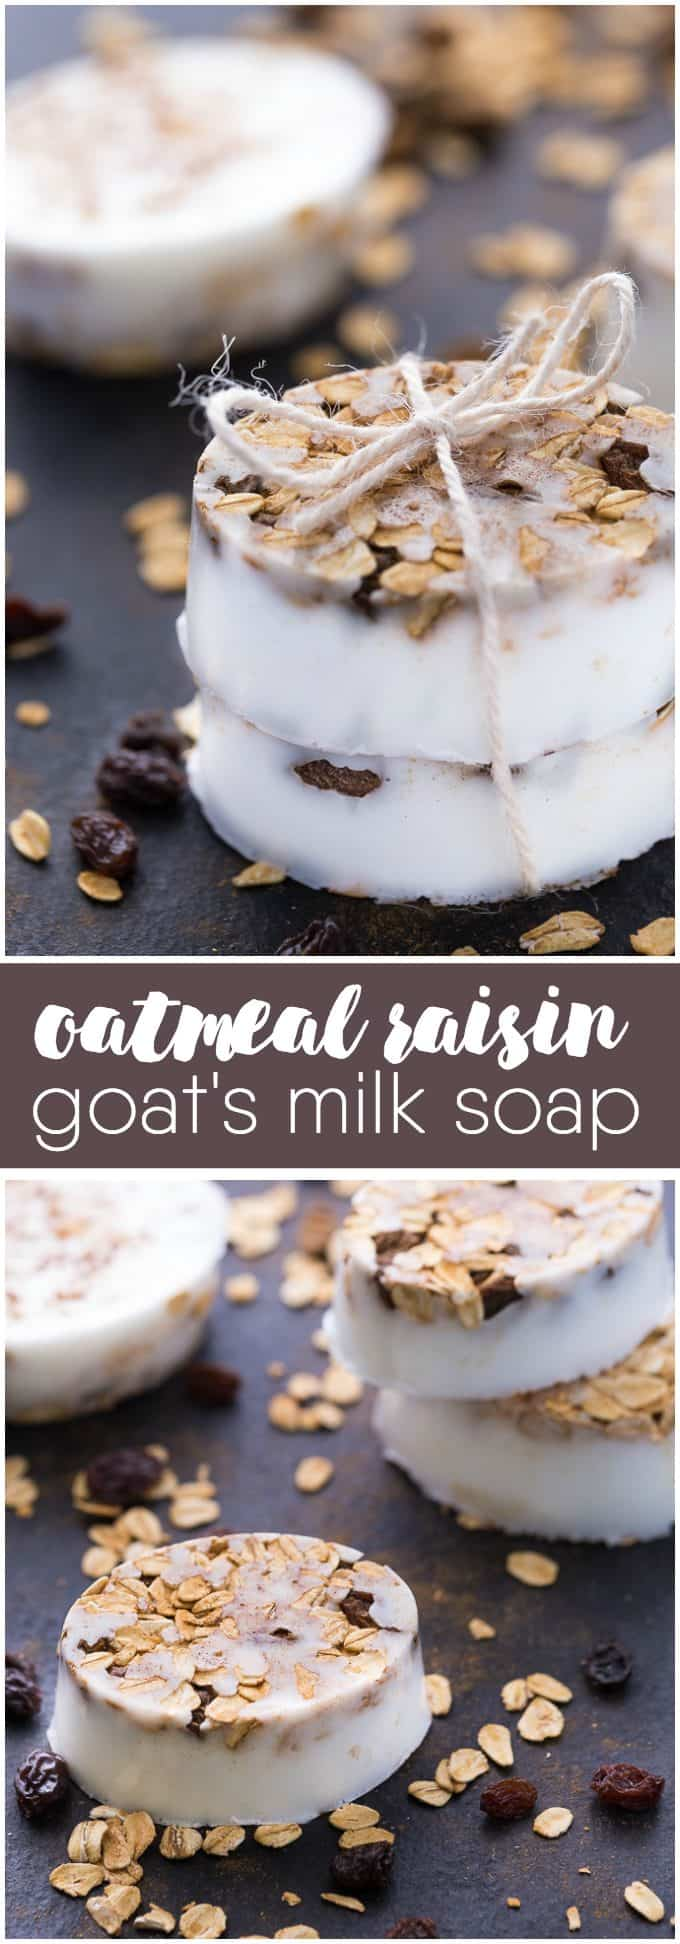 Oatmeal Raisin Goat's Milk Soap - This soap smells so good you'll almost want to eat it! Made with spicy blend of cinnamon and clove essential oil with oats and raisins.